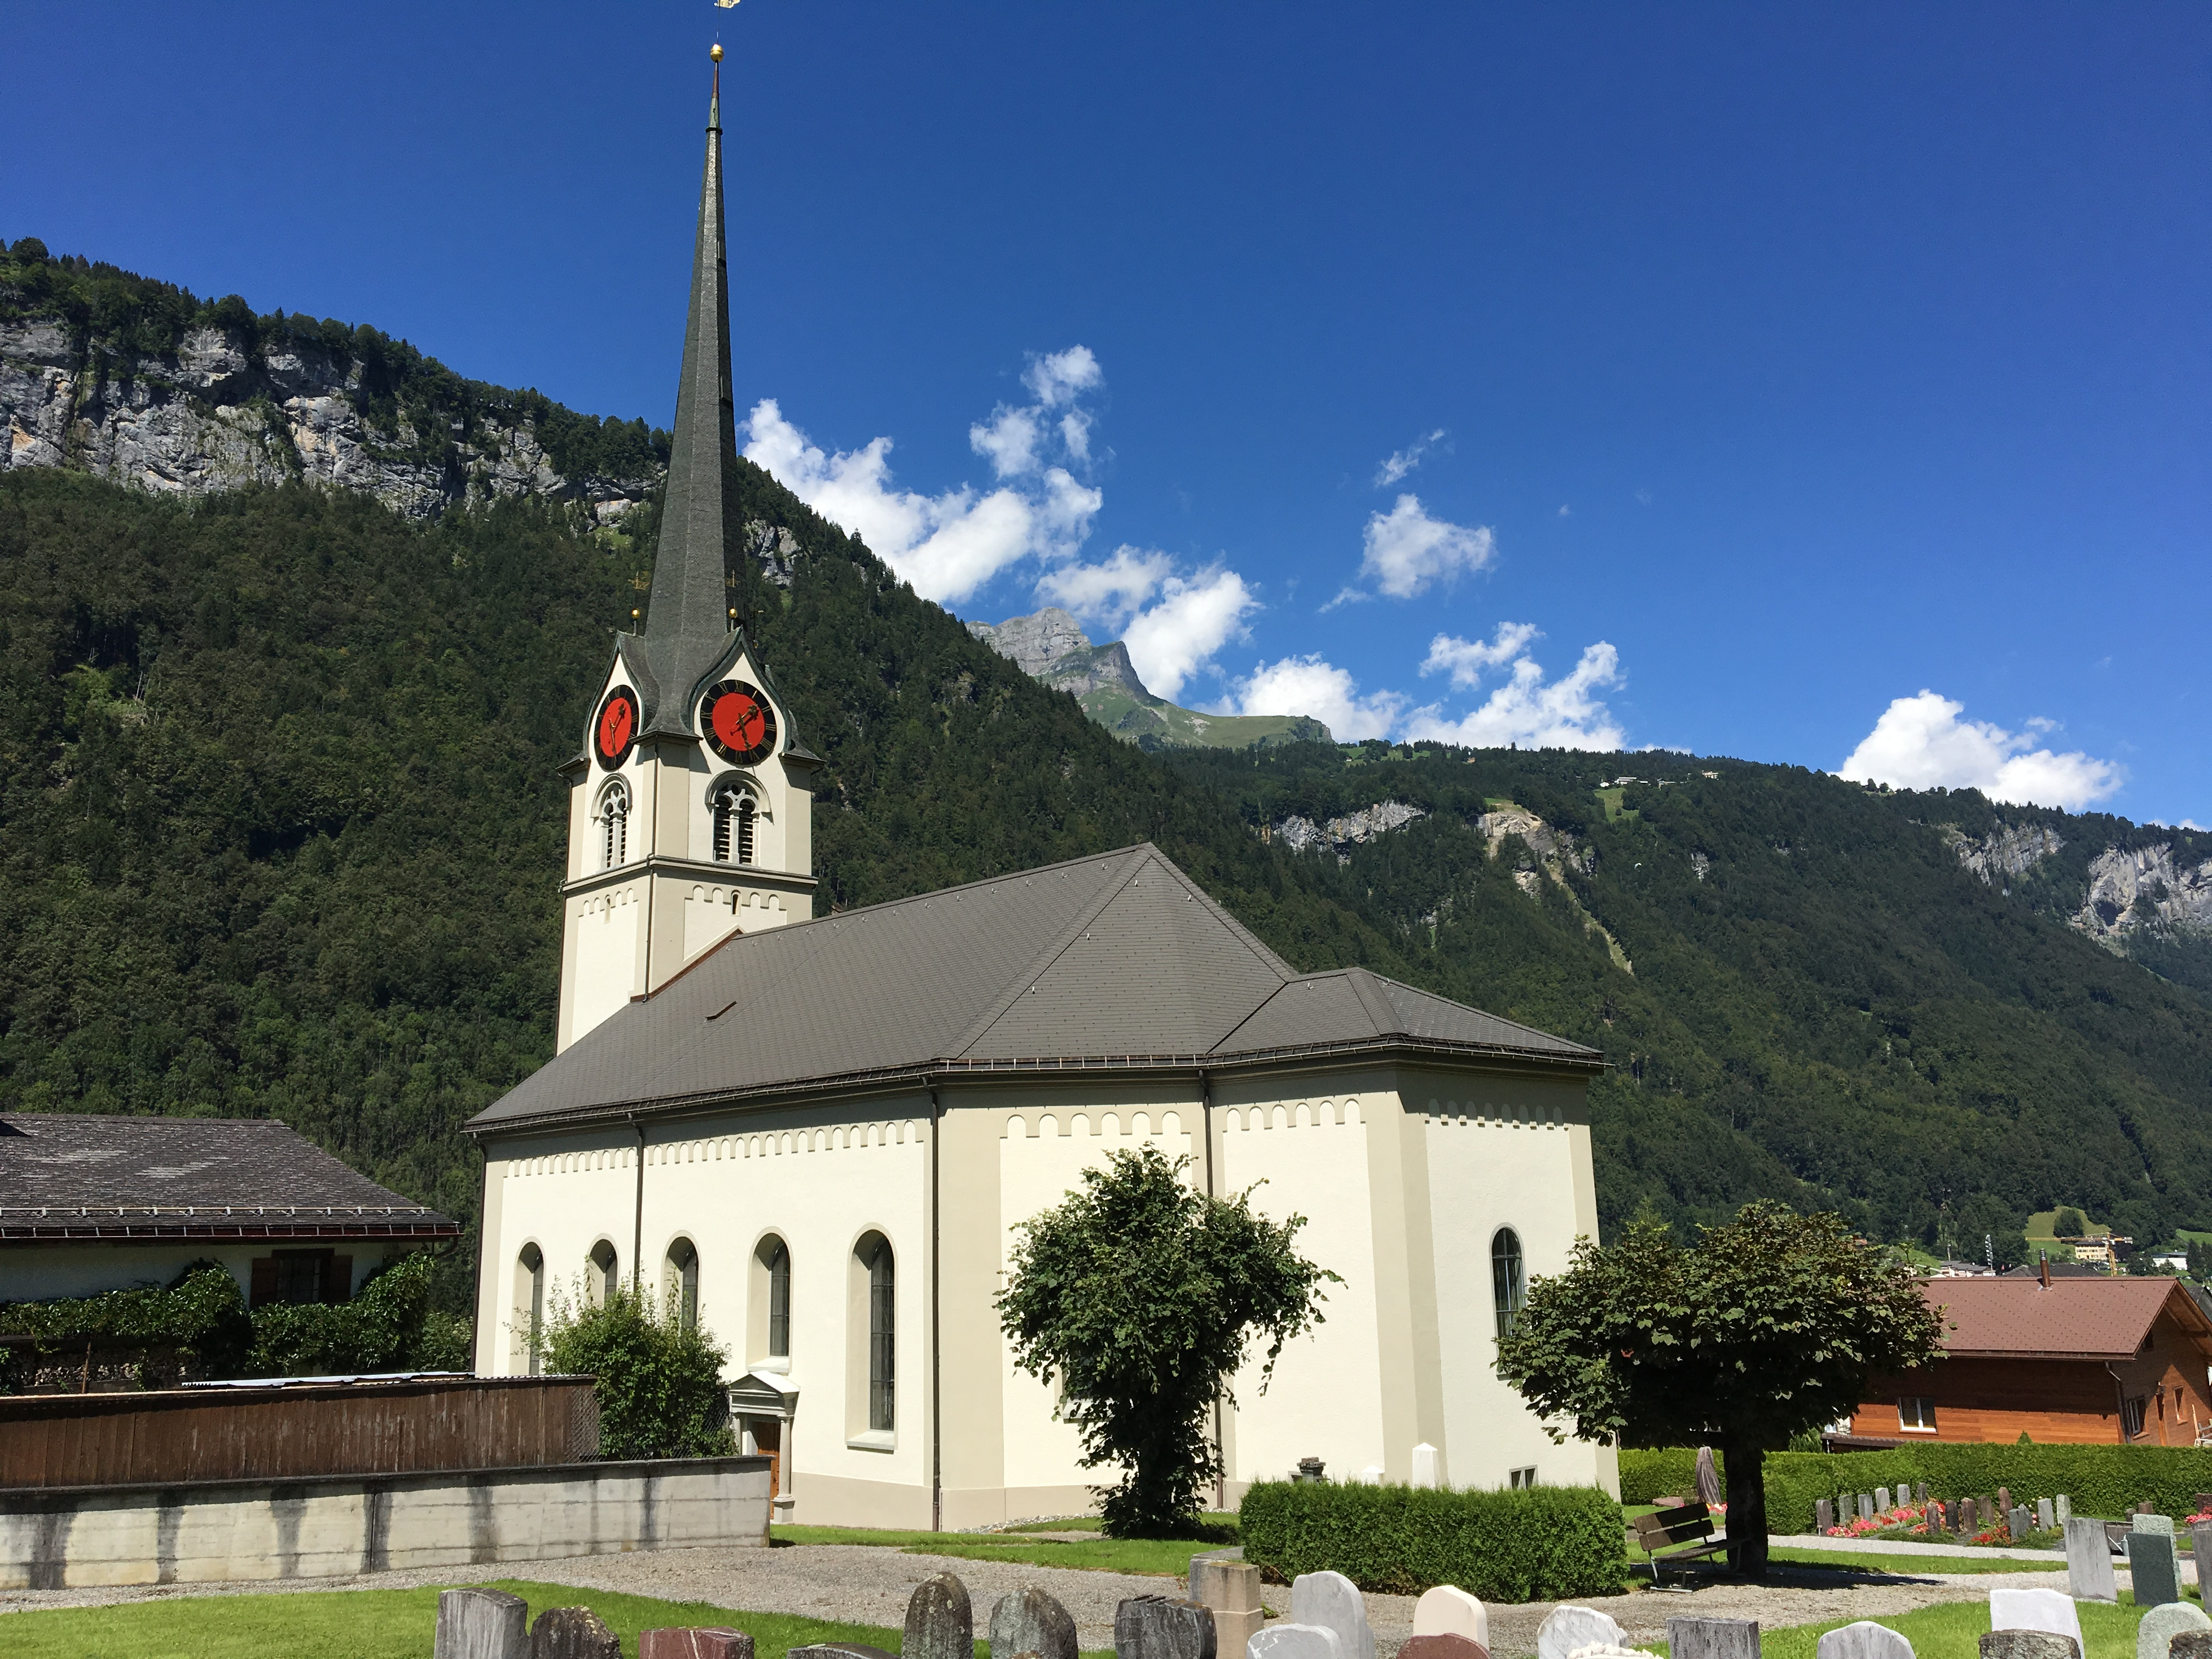 Linthal Protestant Church